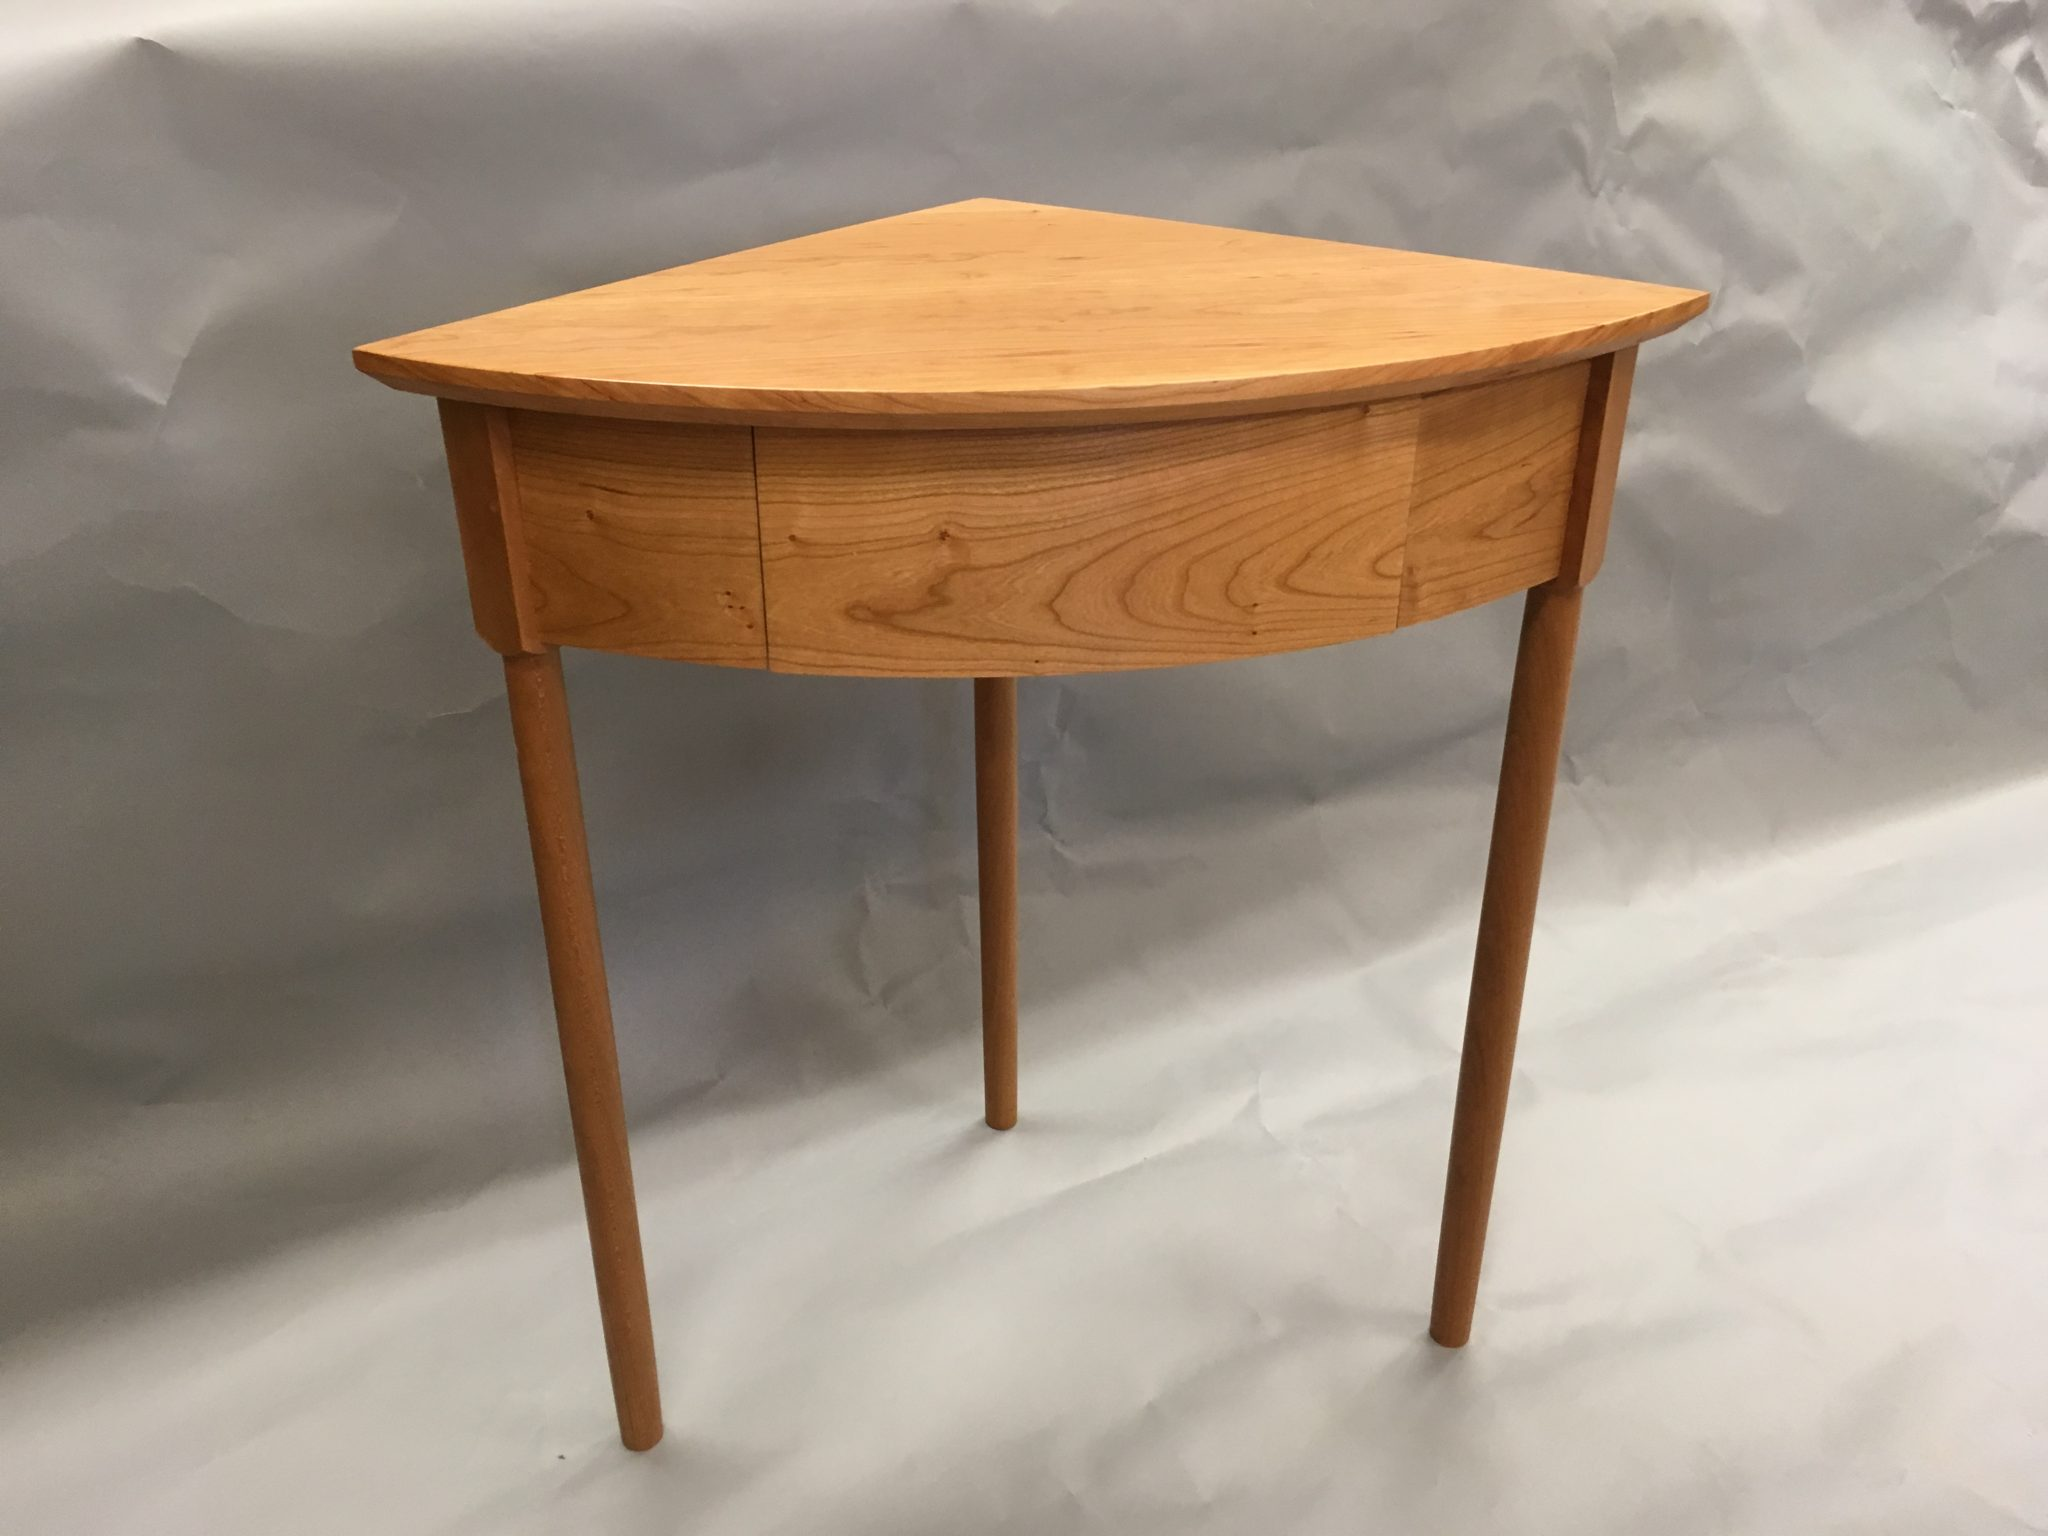 3 leg corner table in cherry with drawer